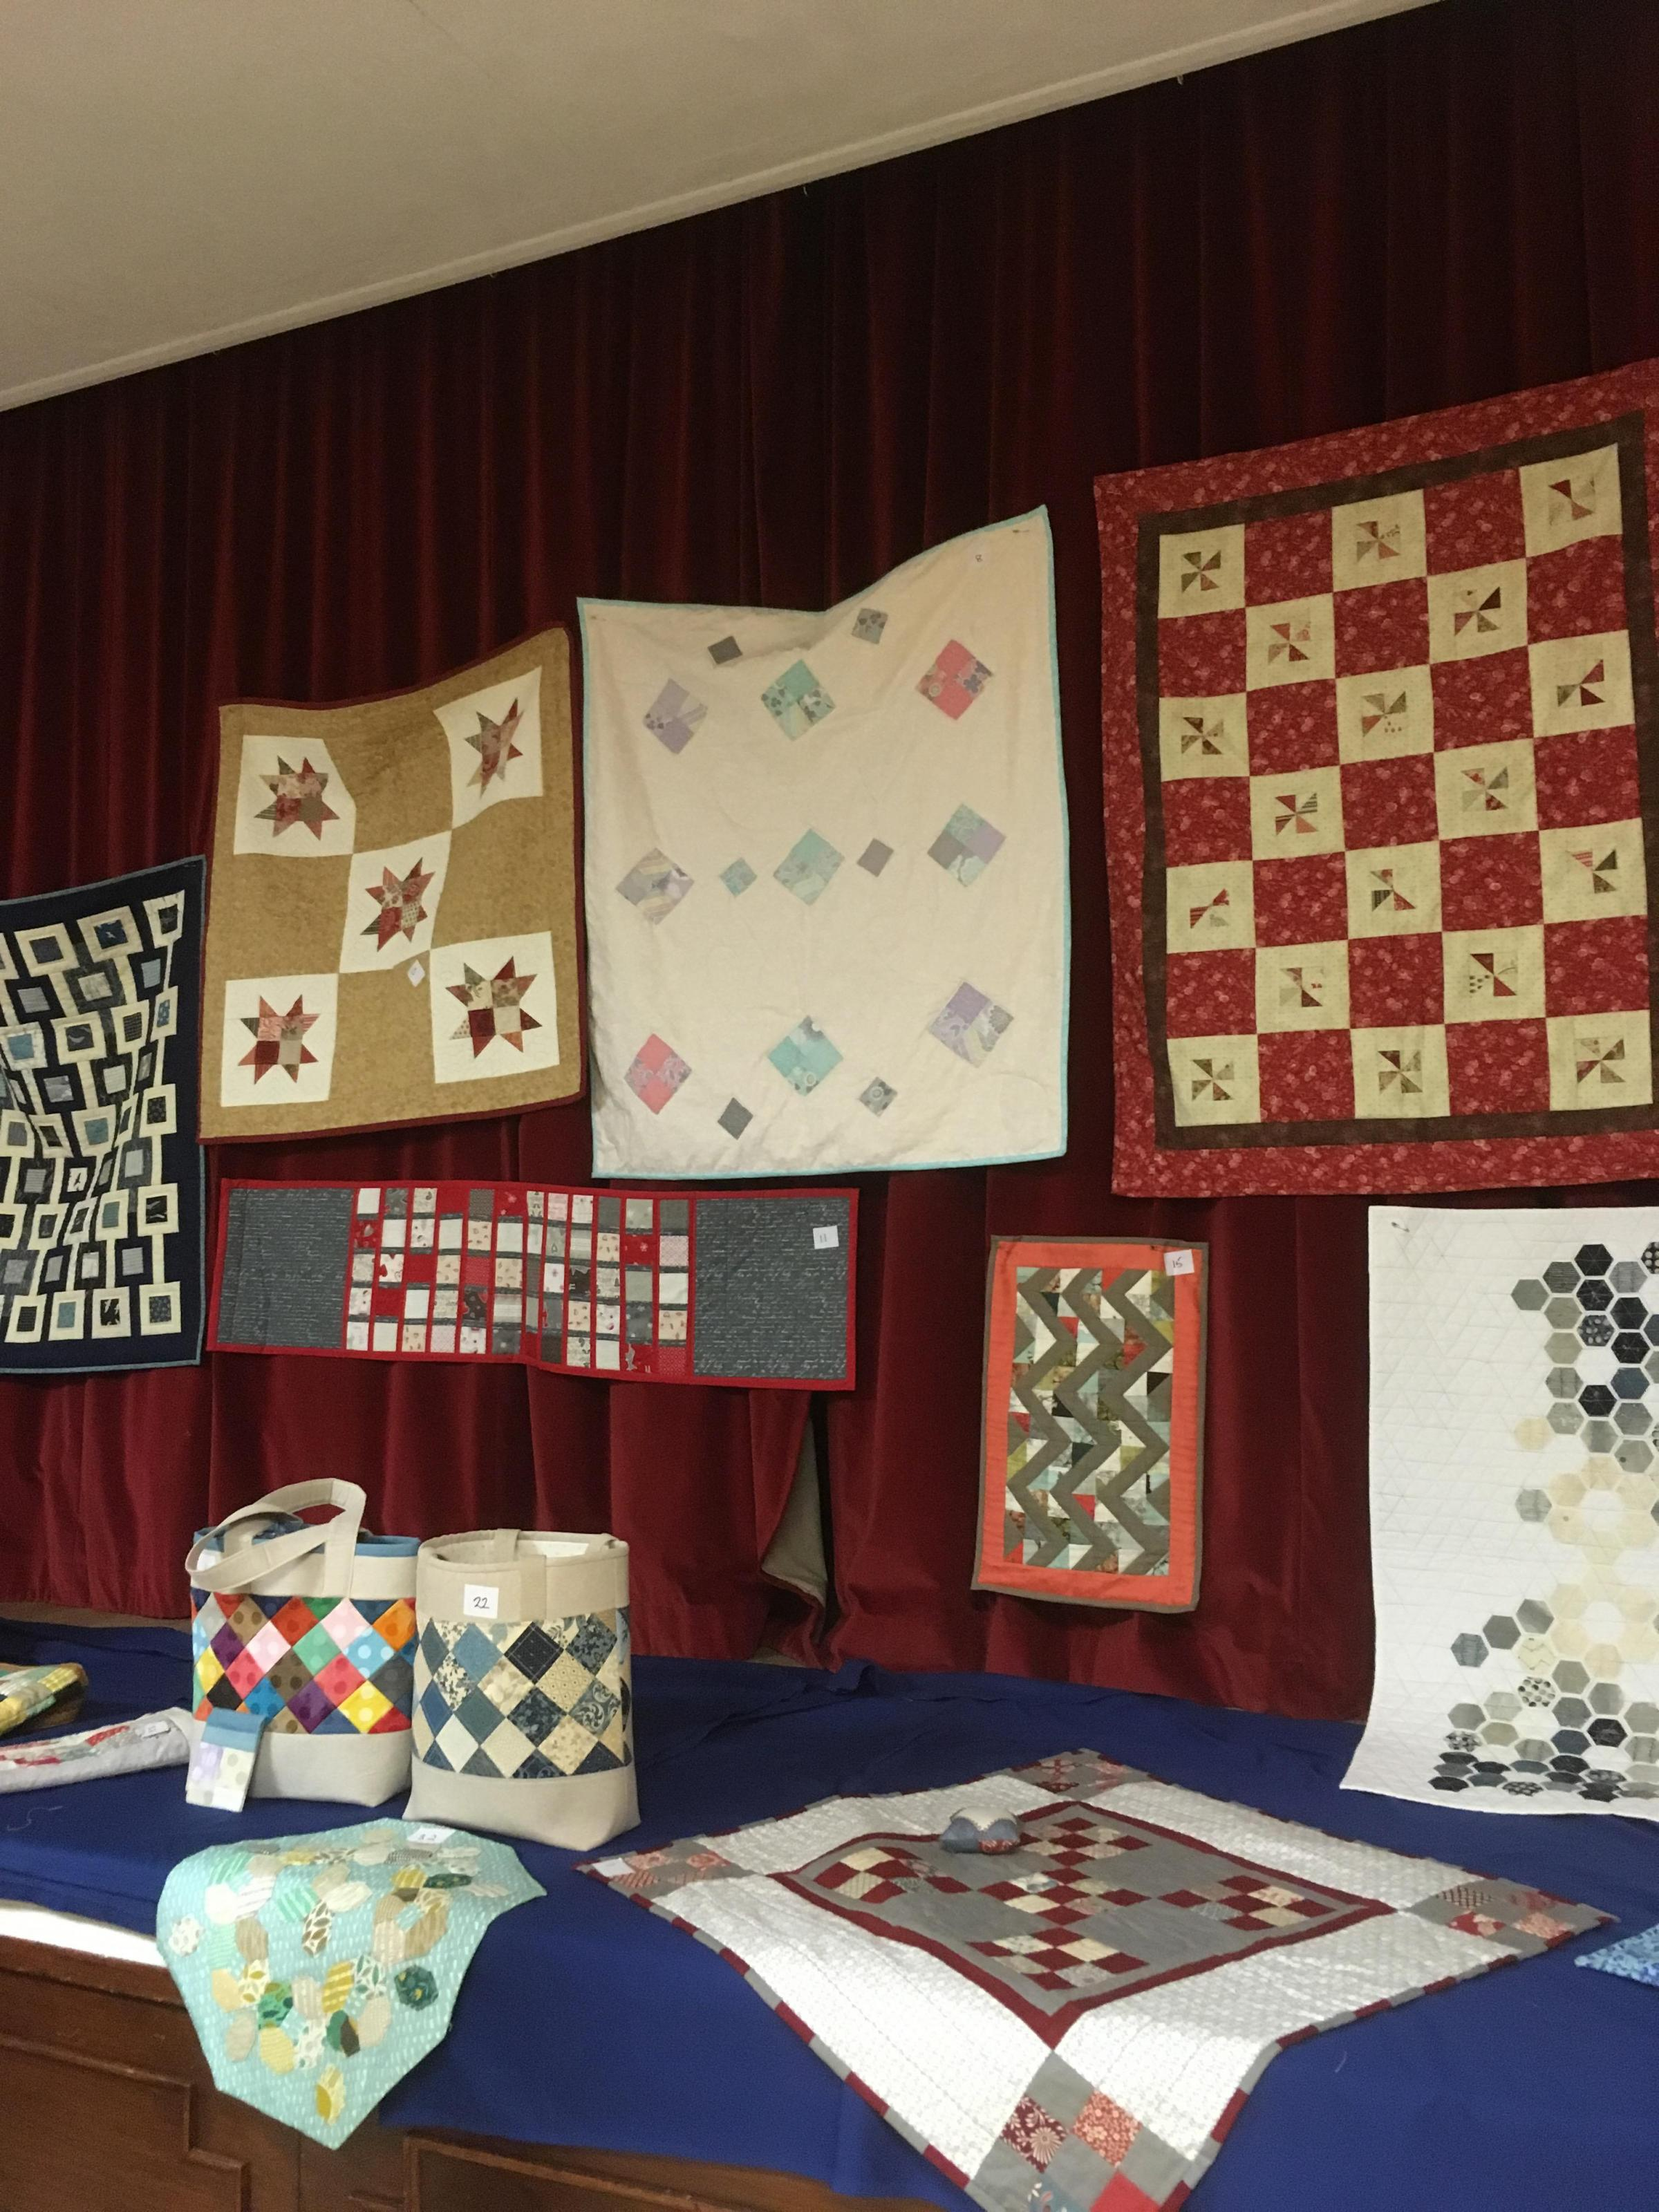 Broughton Gifford Piecemakers Quilt Exhibition